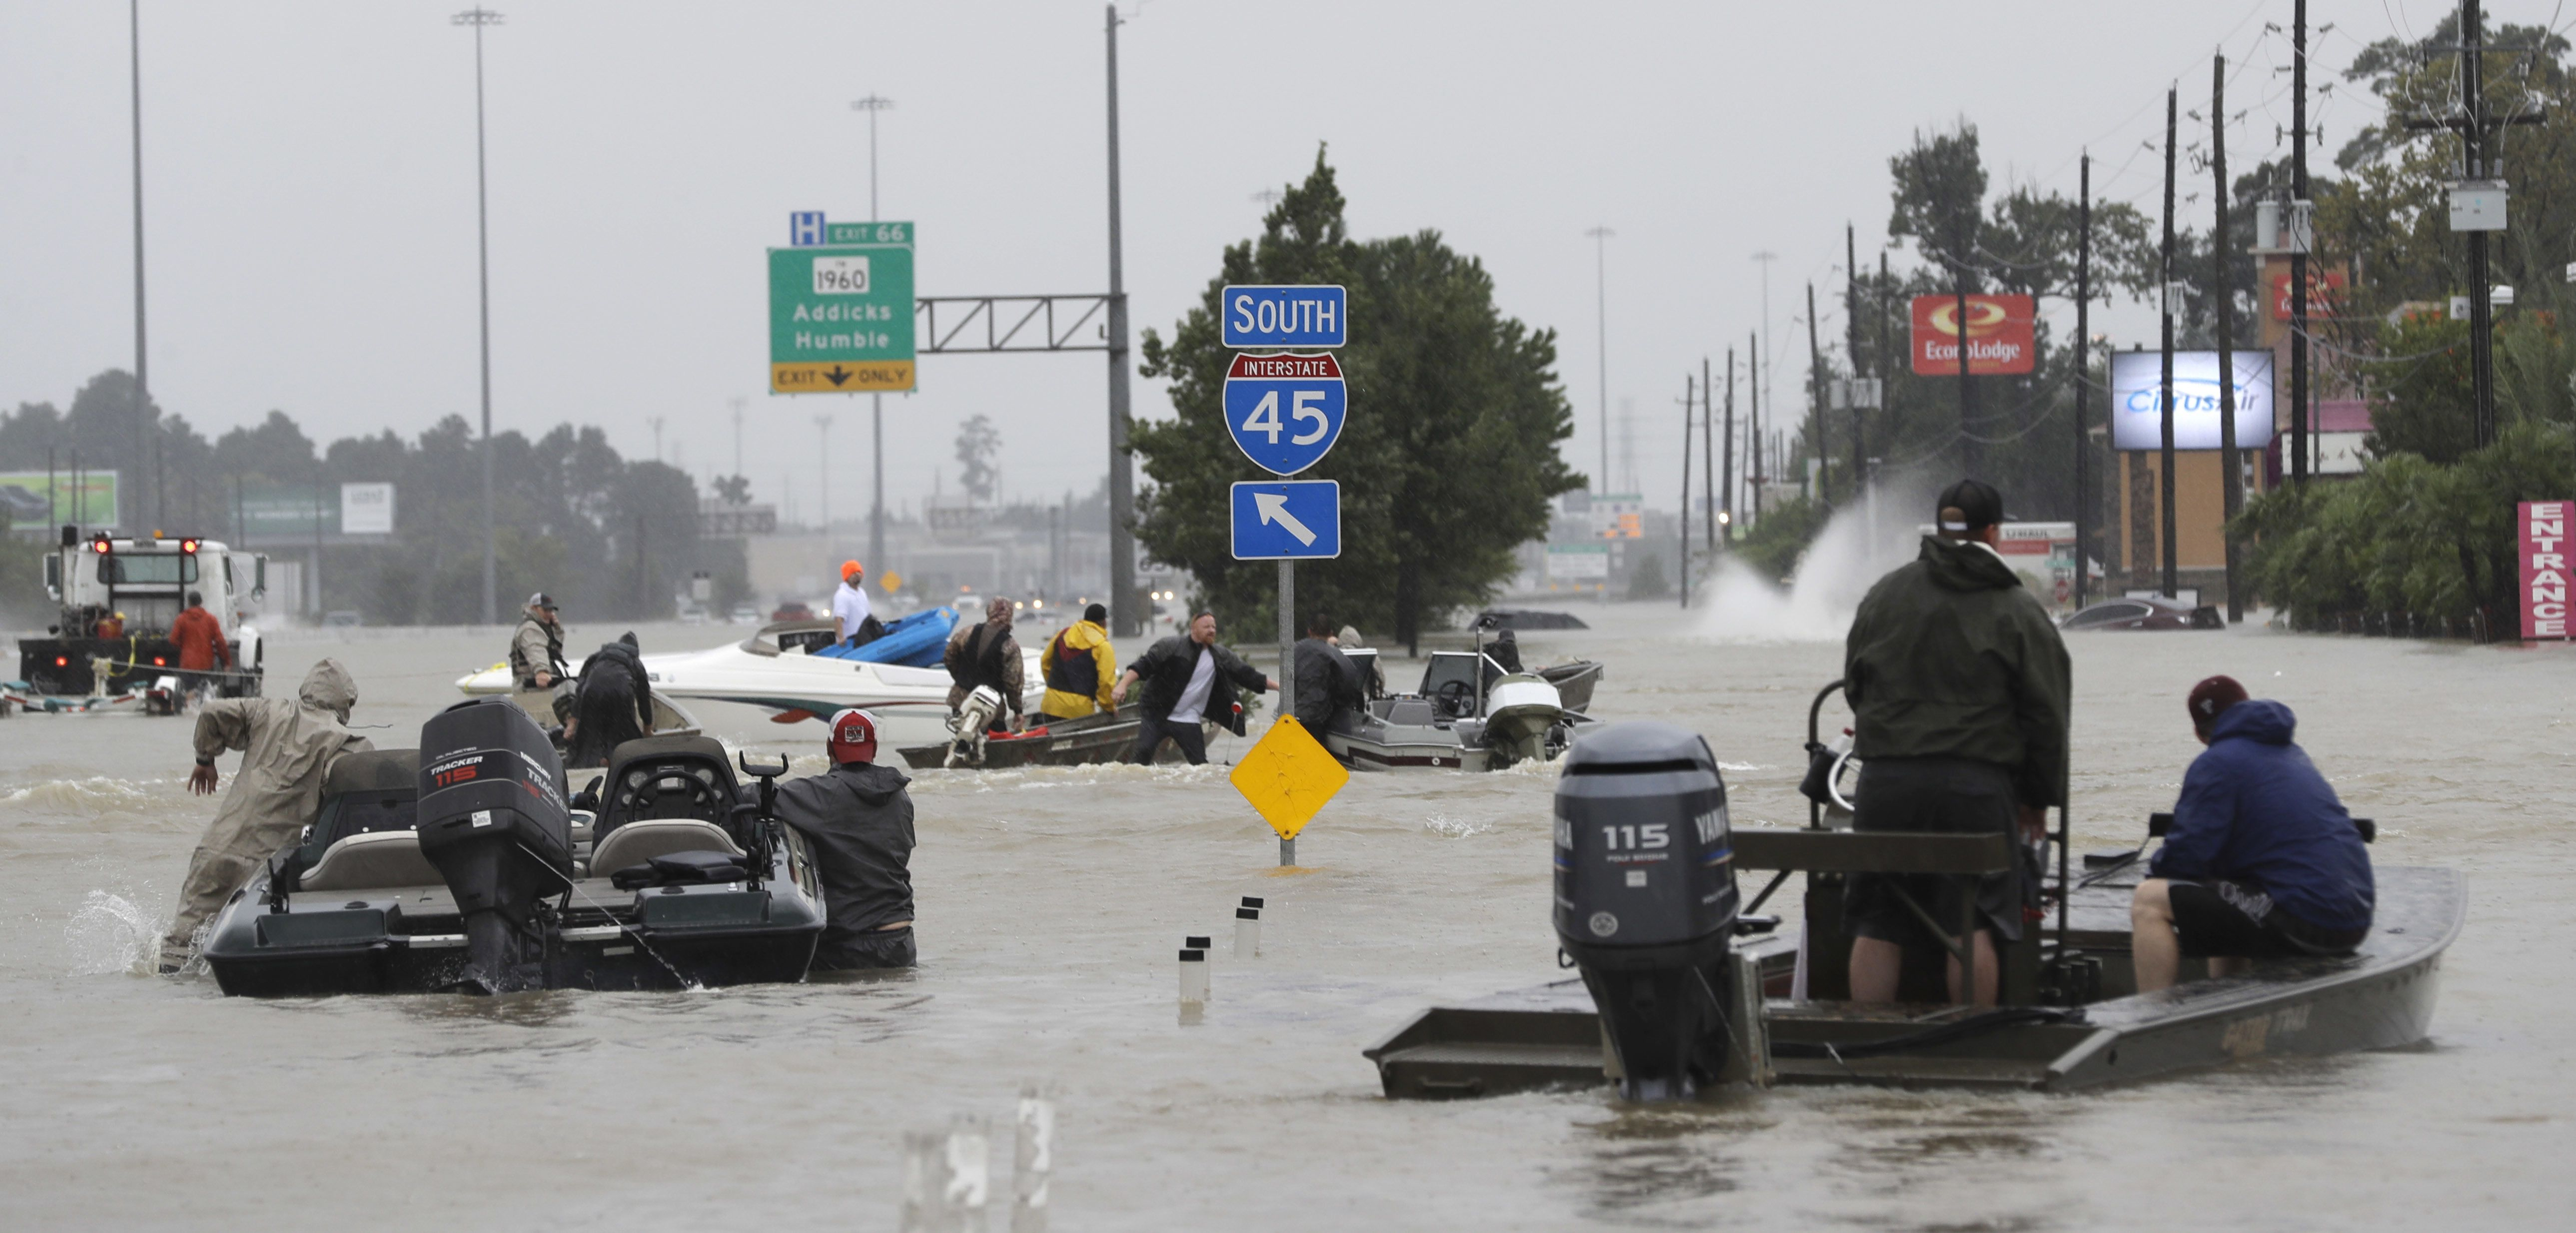 Houston S Mayor Said 1 000 People Have Been Rescued In The Last 8